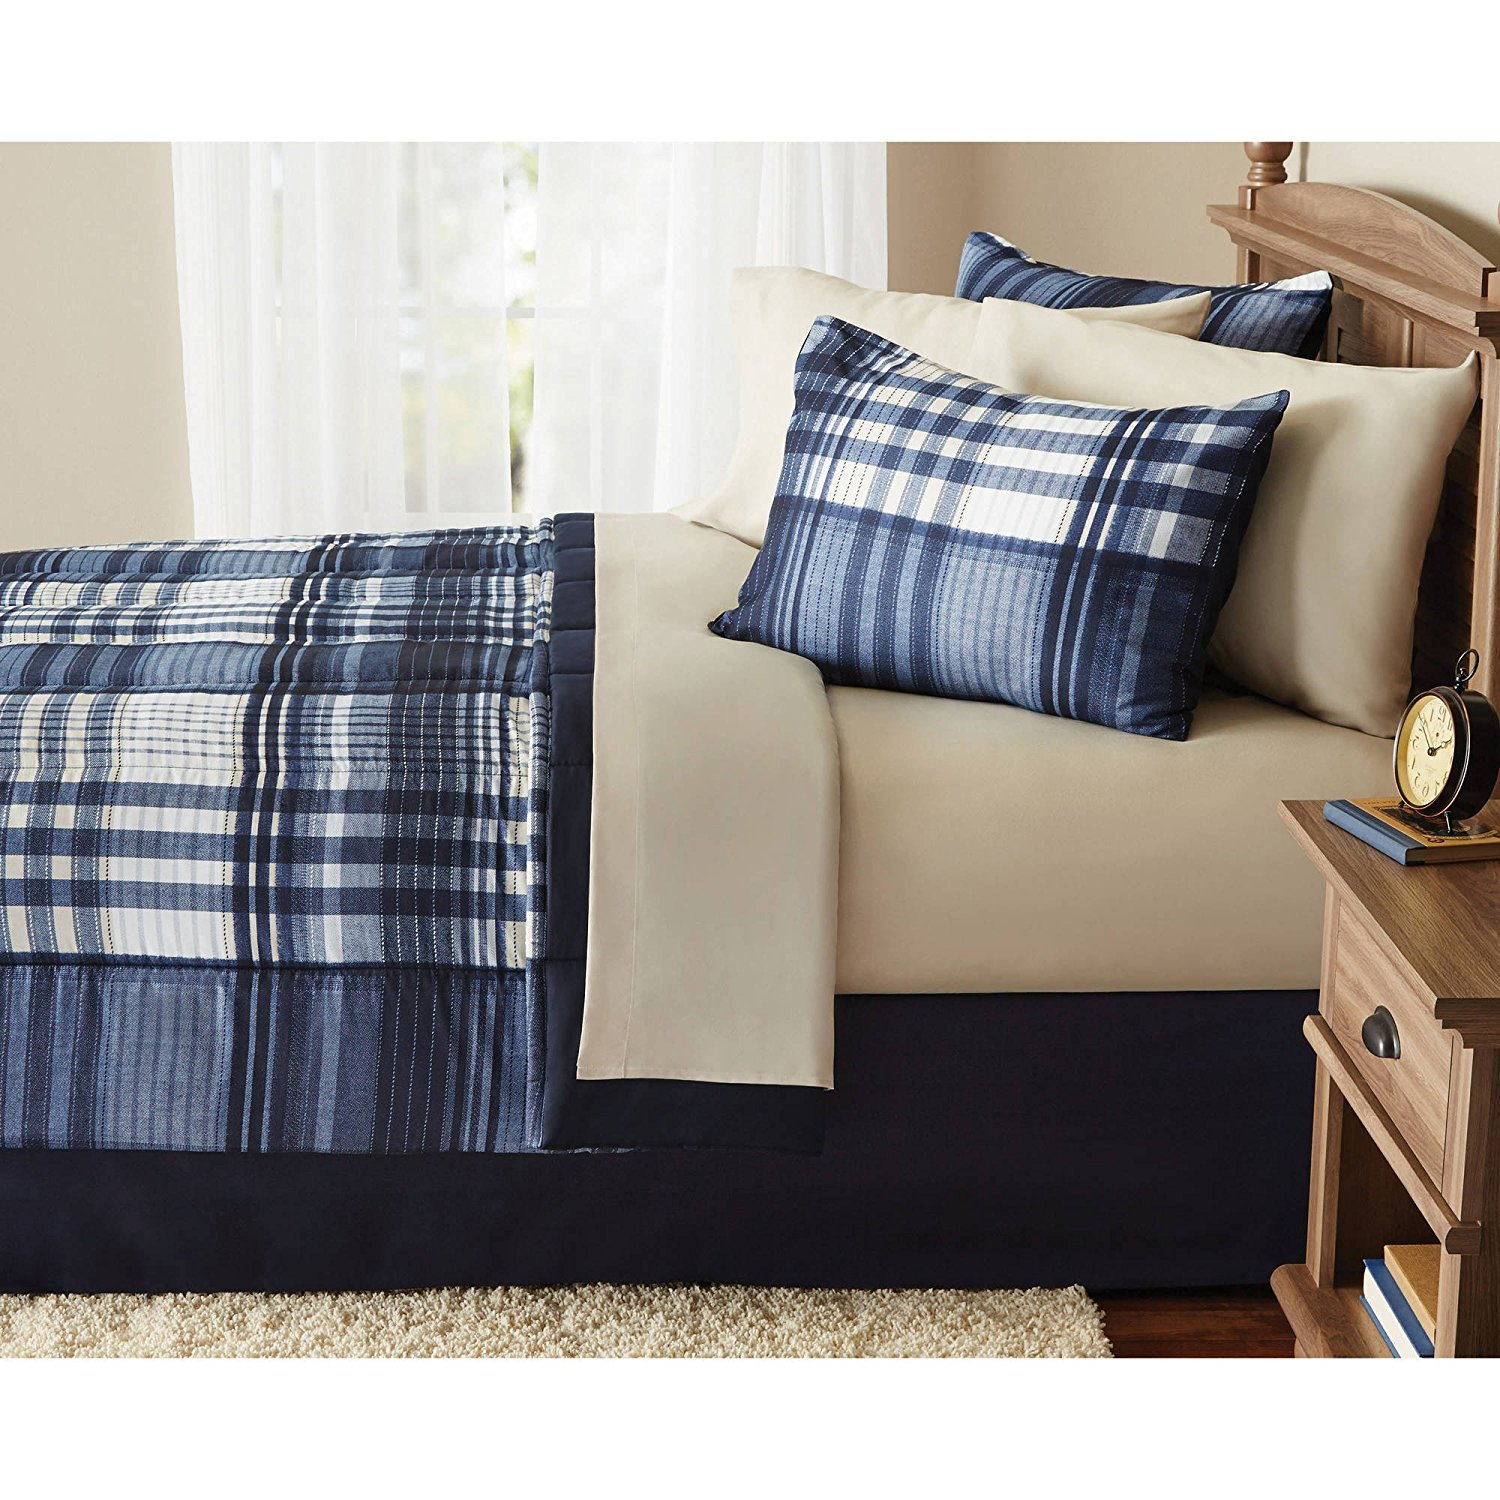 8 Piece Indigo Blue Plaid Checked comforters Queen Set With Sheets, White Checkered Gingham Lumberjack Madras Pattern, Modern Reversible Solid Dark Blue Color Adult Bedding Master Bedroom, Polyester